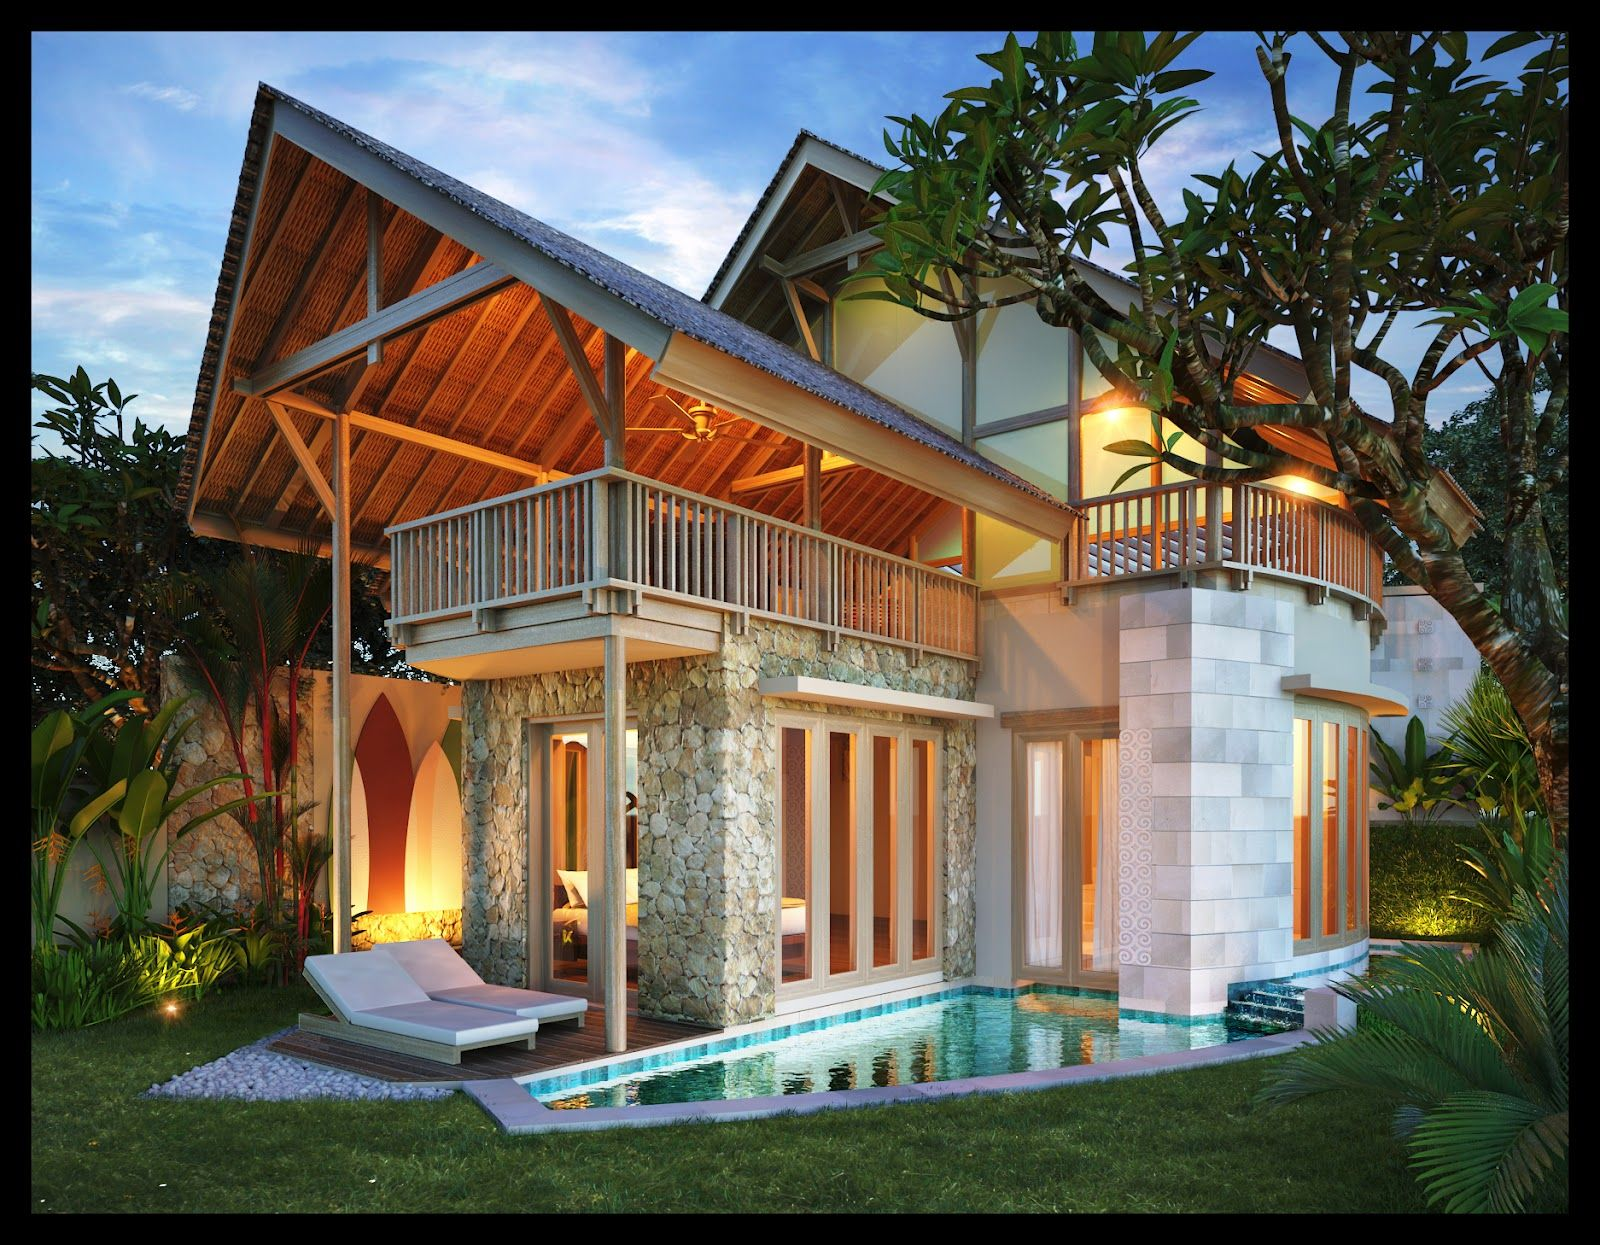 Architecture Balinese Style House Designs Natural Home Plans Contemporary.  Charter High School For Architecture And Design. Home Designer Architectural  ...